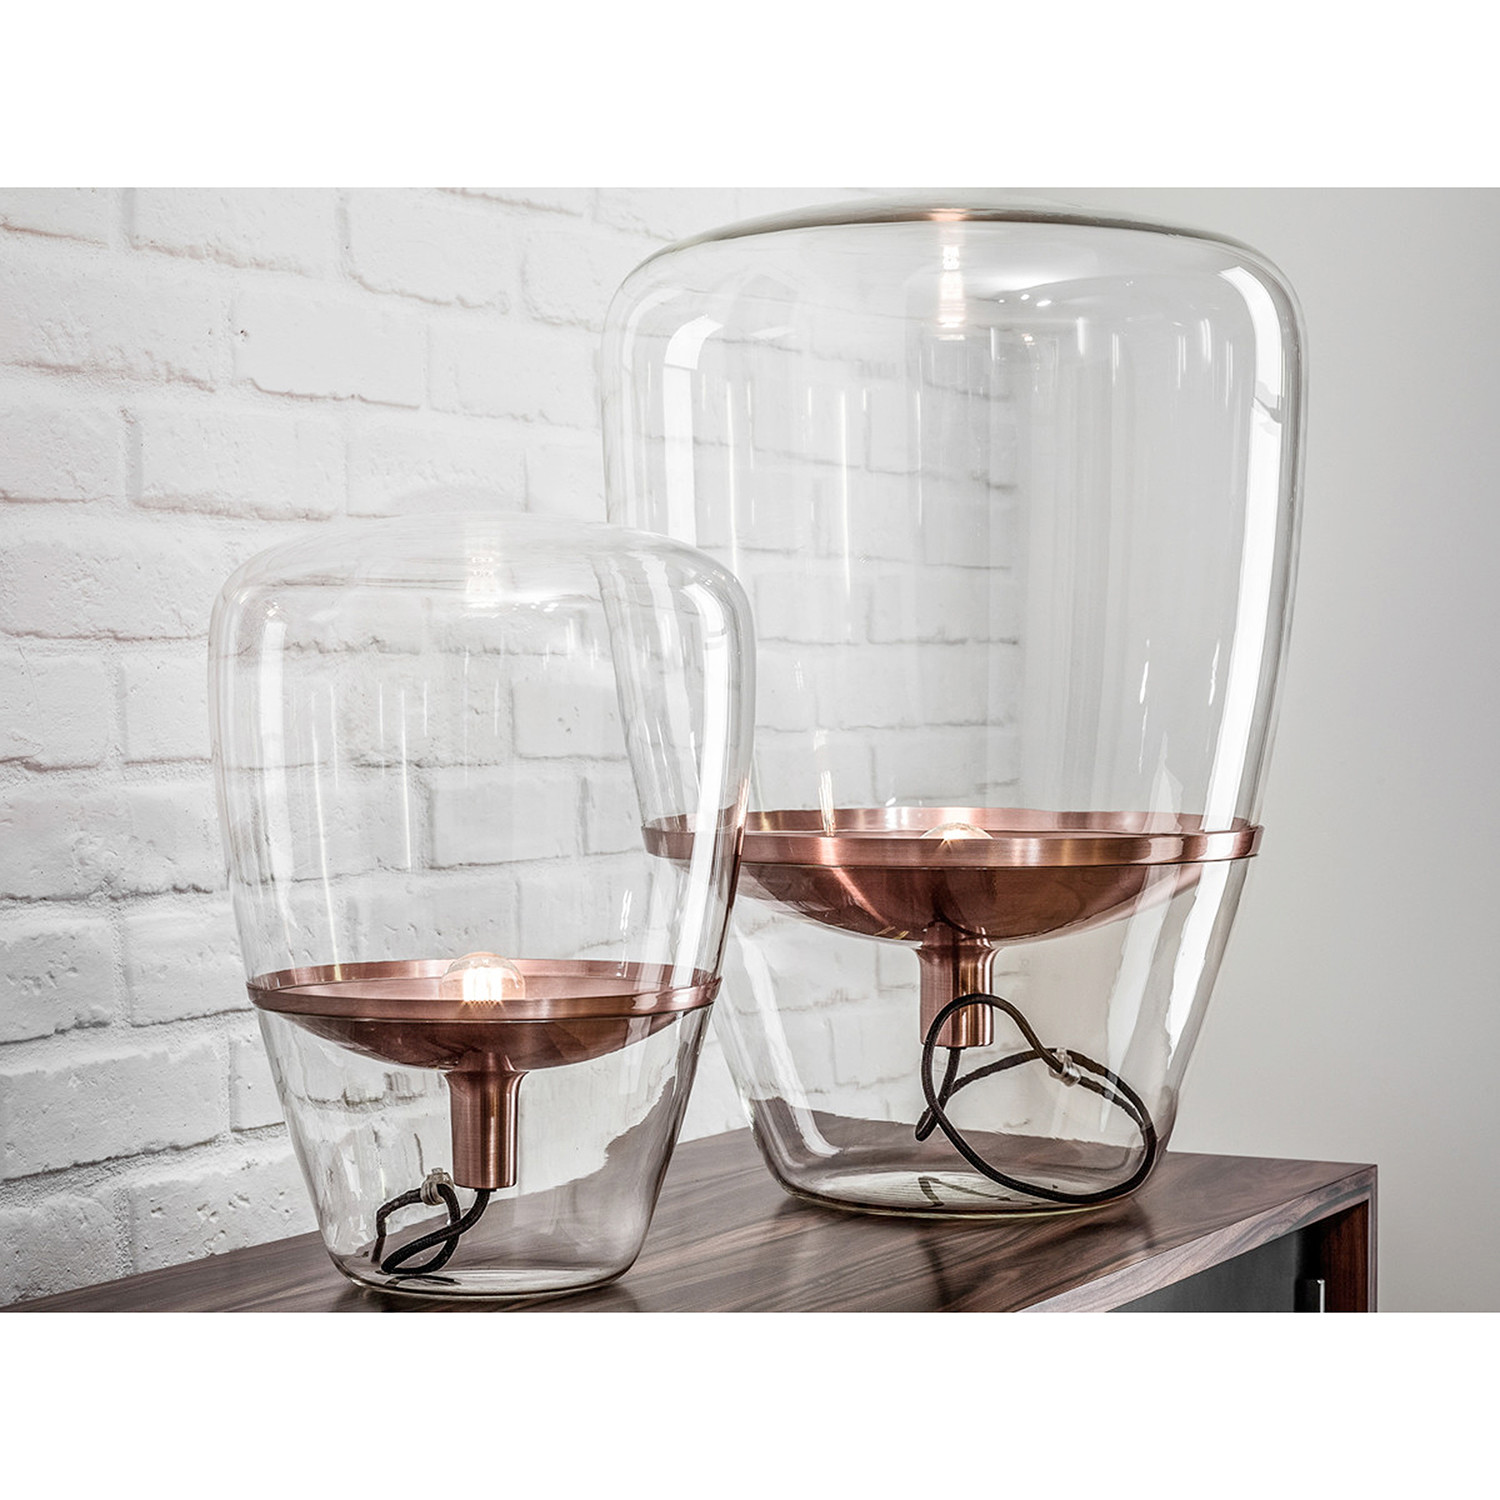 hot balloon lamp rose gold small innostyles touch of modern. Black Bedroom Furniture Sets. Home Design Ideas